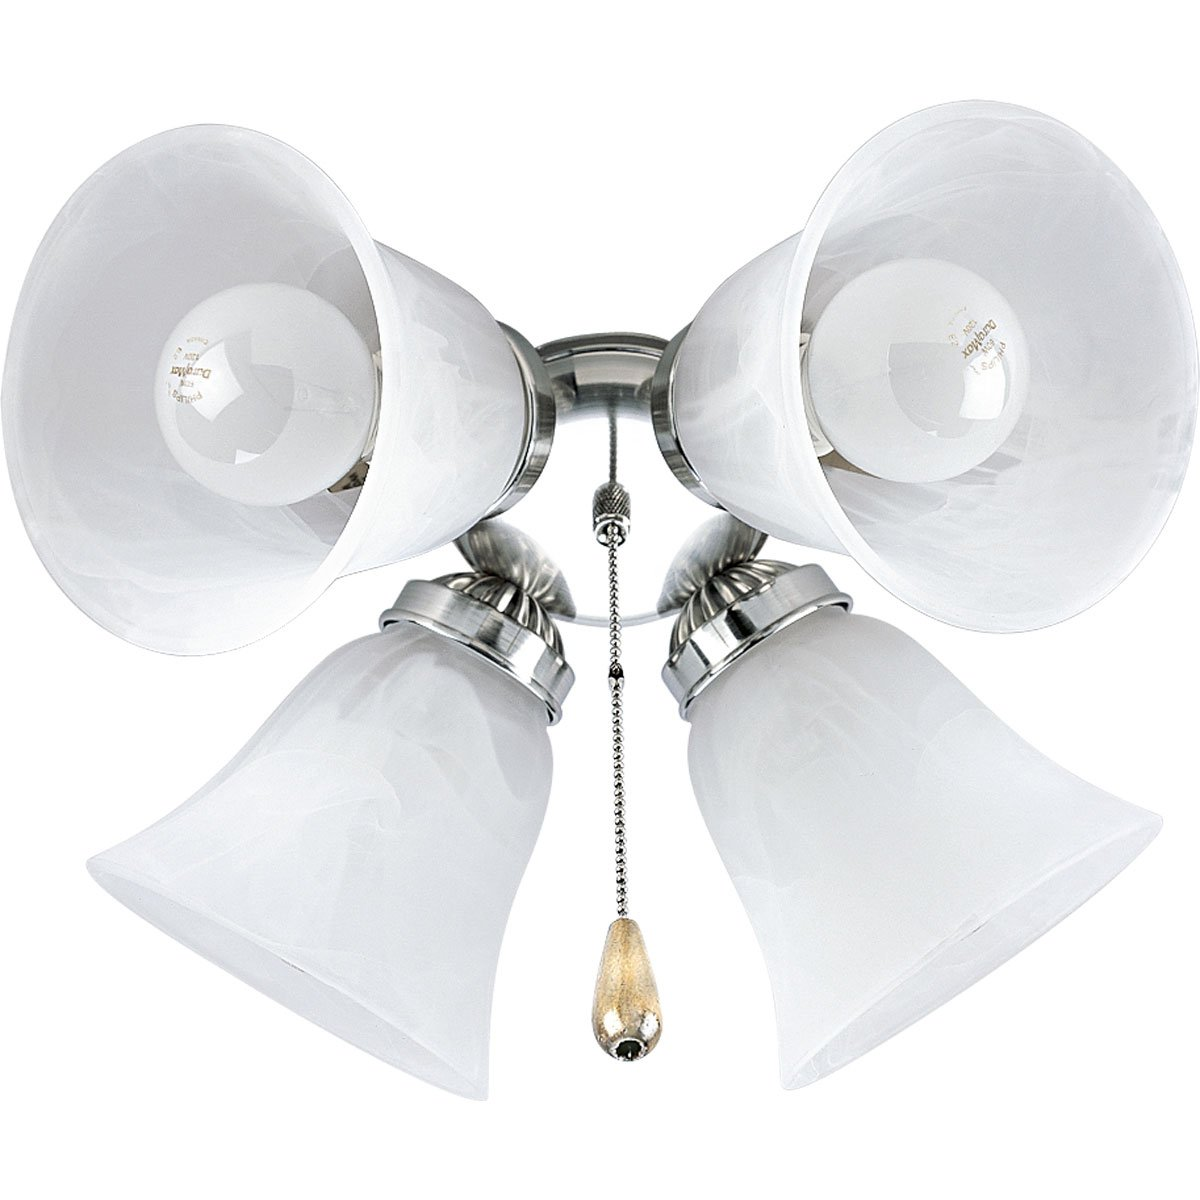 progress lighting p261009 4light kit with white washed alabaster style glass for use with p2500 and p2501 ceiling fans brushed nickel amazoncom